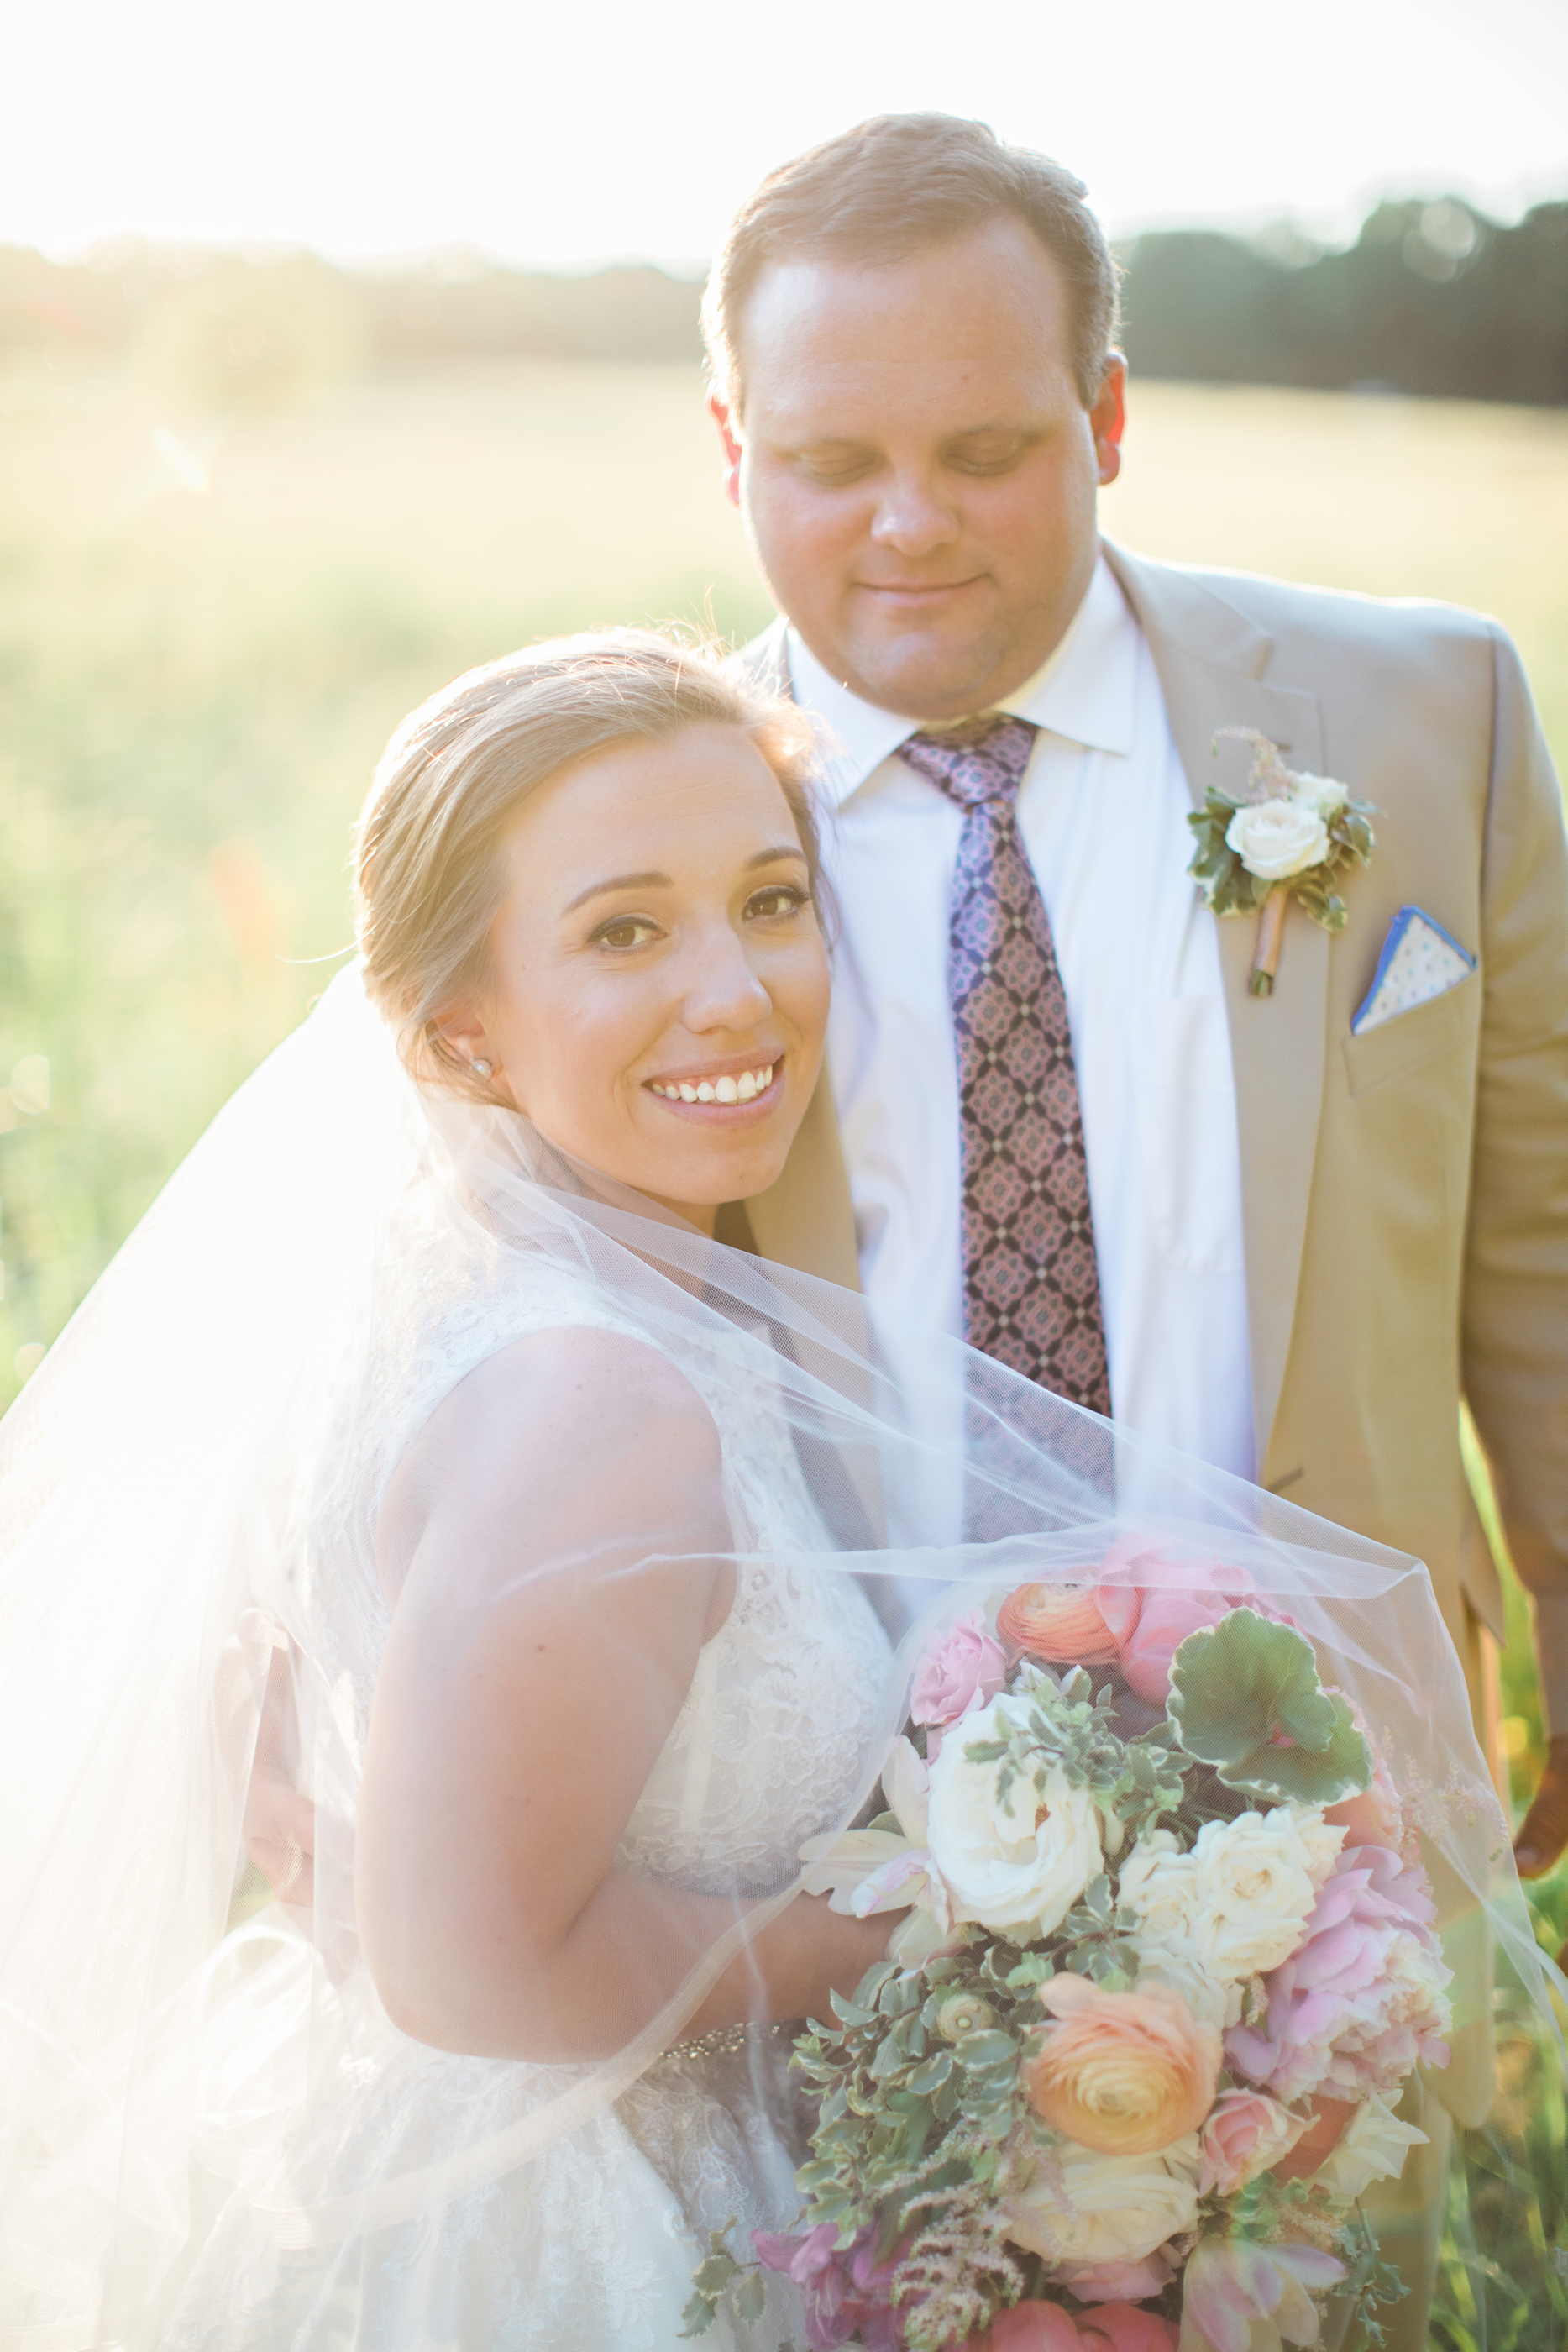 Alabama-Wedding-Photographers-Nick-Drollette-Hailey and Reed-151.jpg